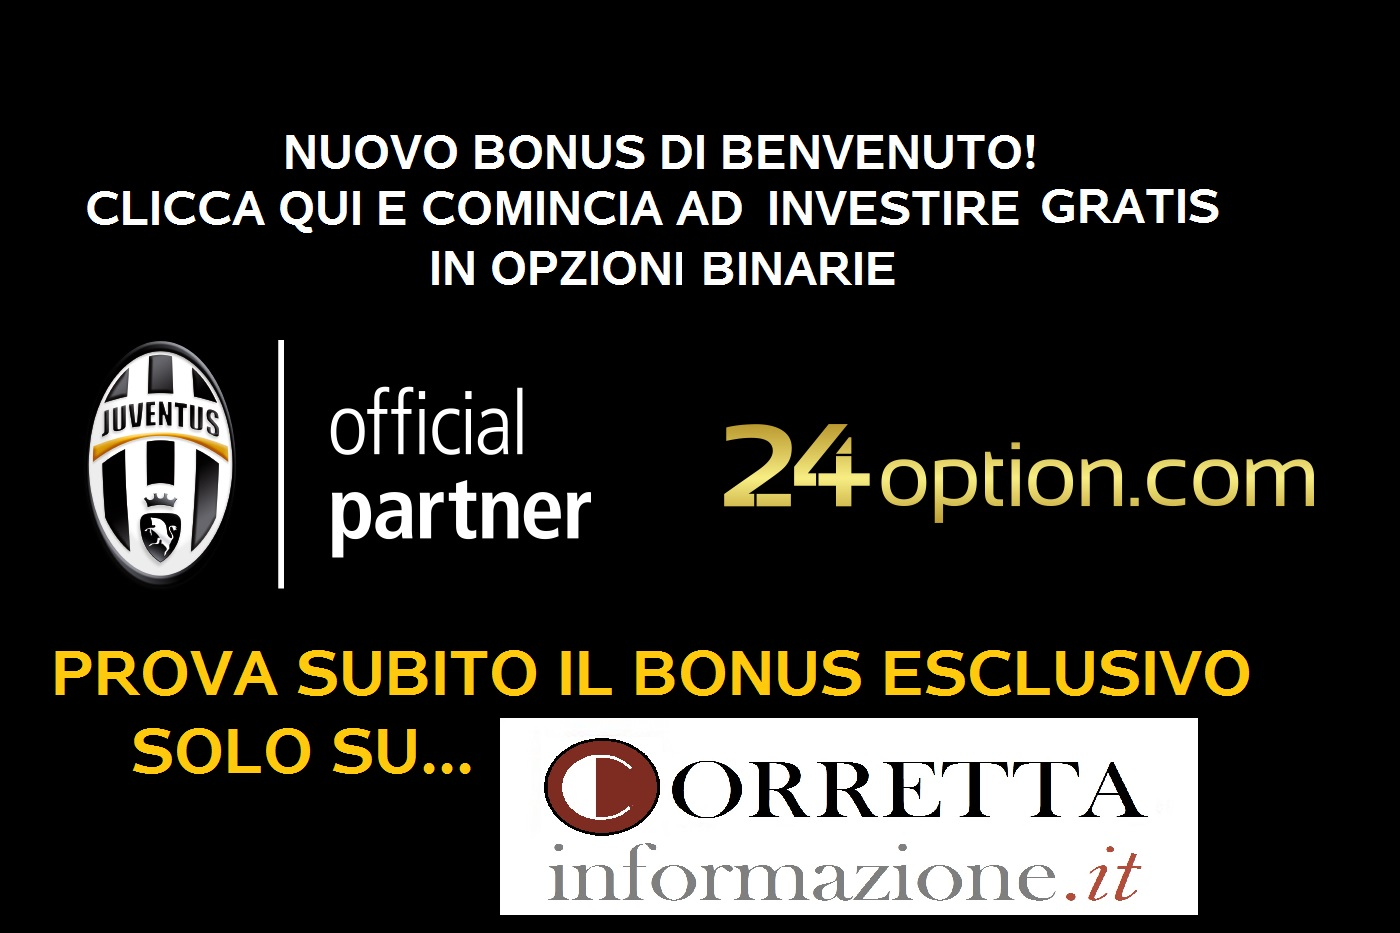 Juventus 24Option opzioni binarie CorrInfo